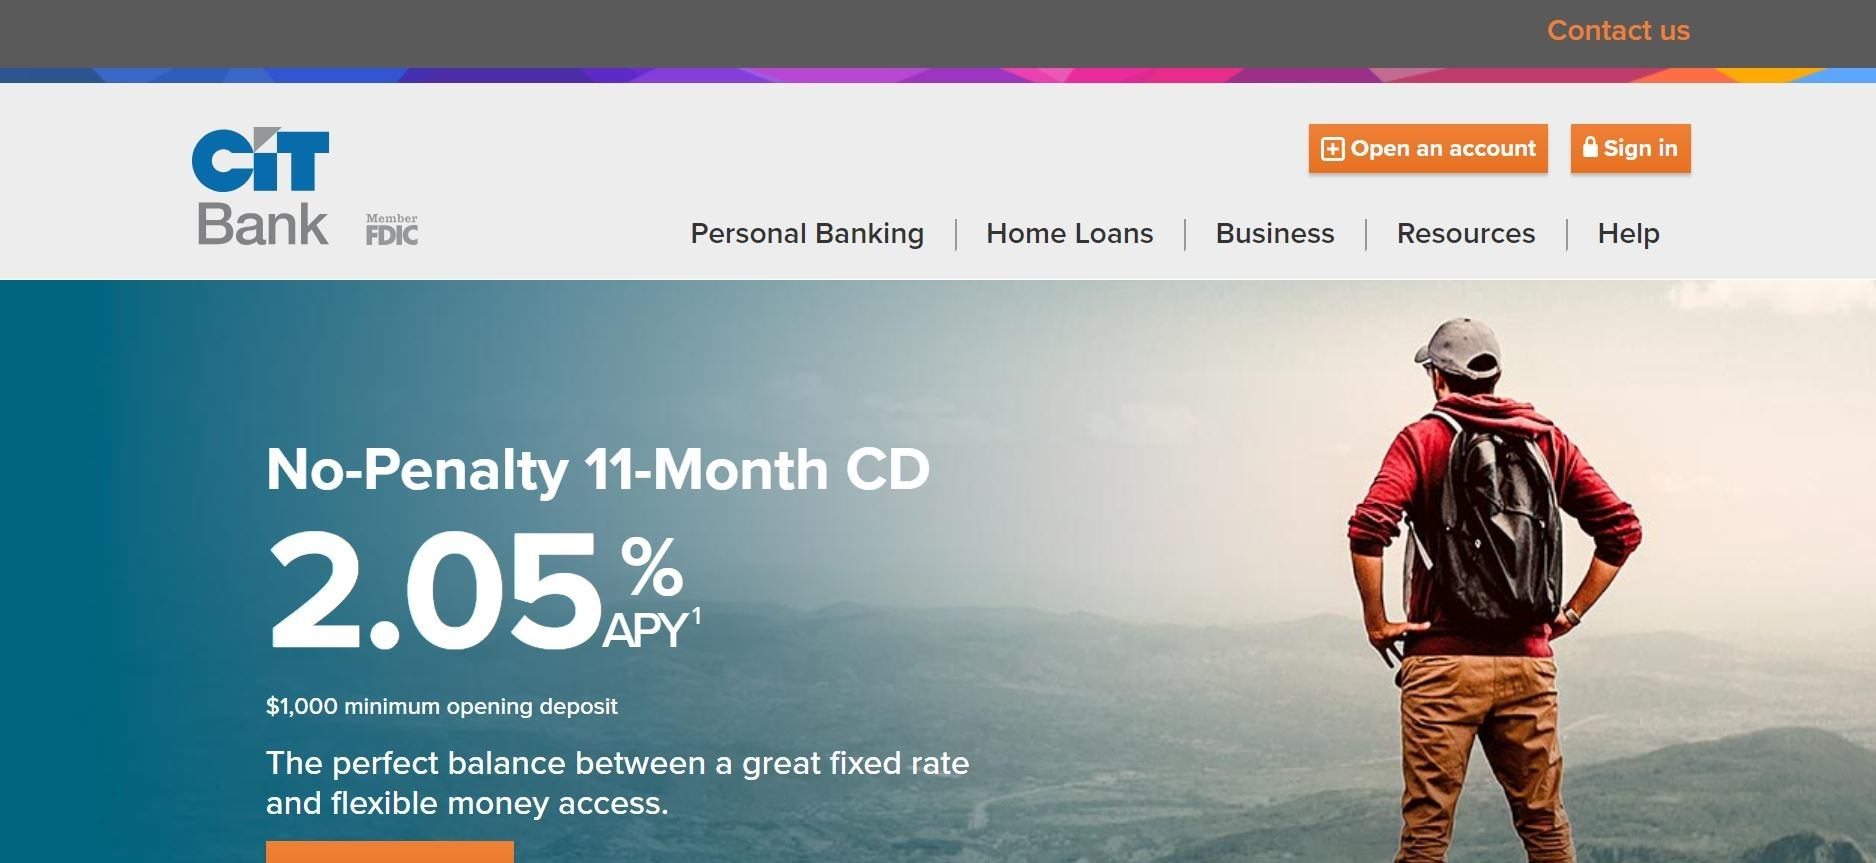 screenshot of the affiliate sign up page for CIT Bank